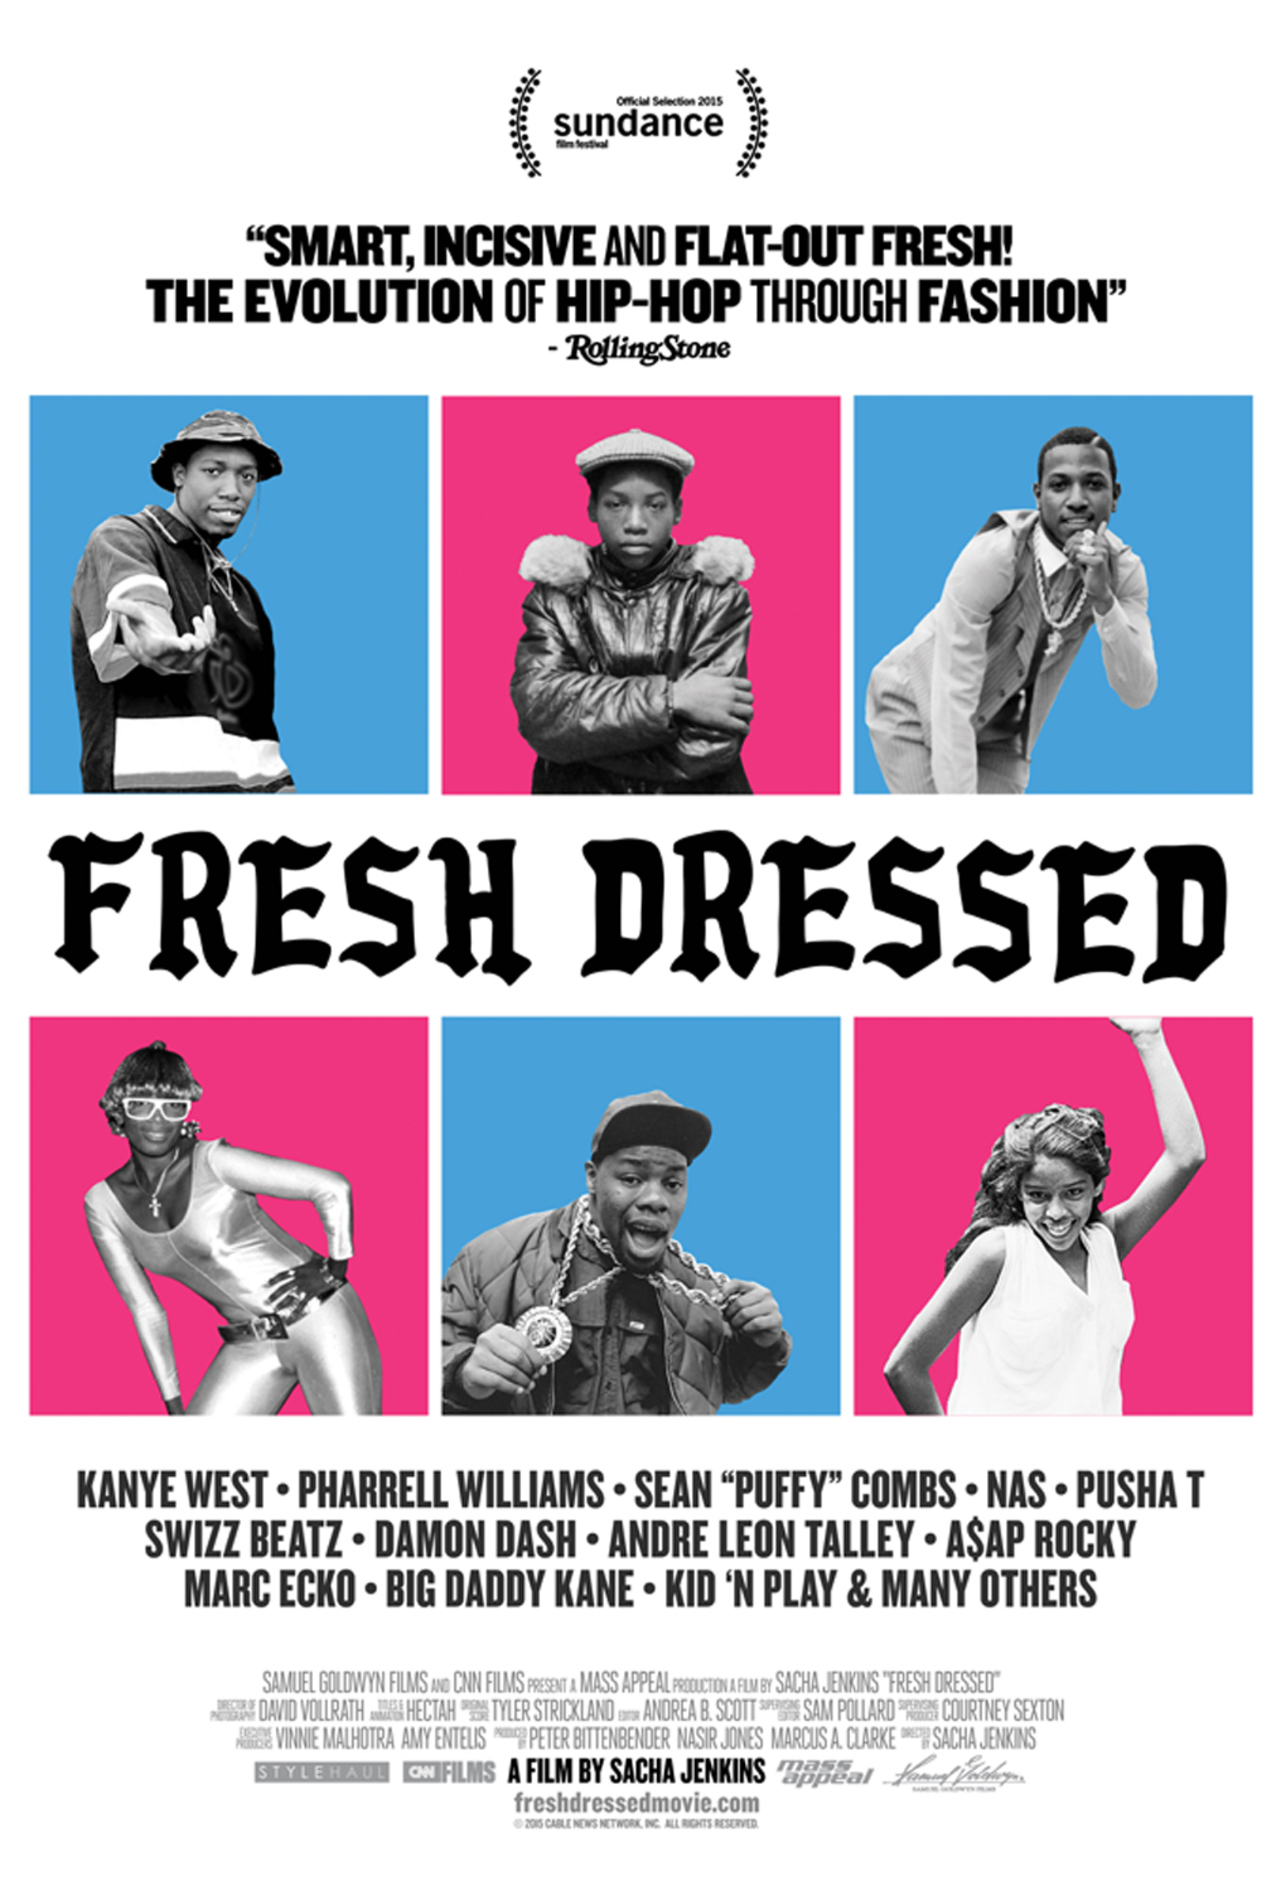 The official poster for FRESH DRESSED.